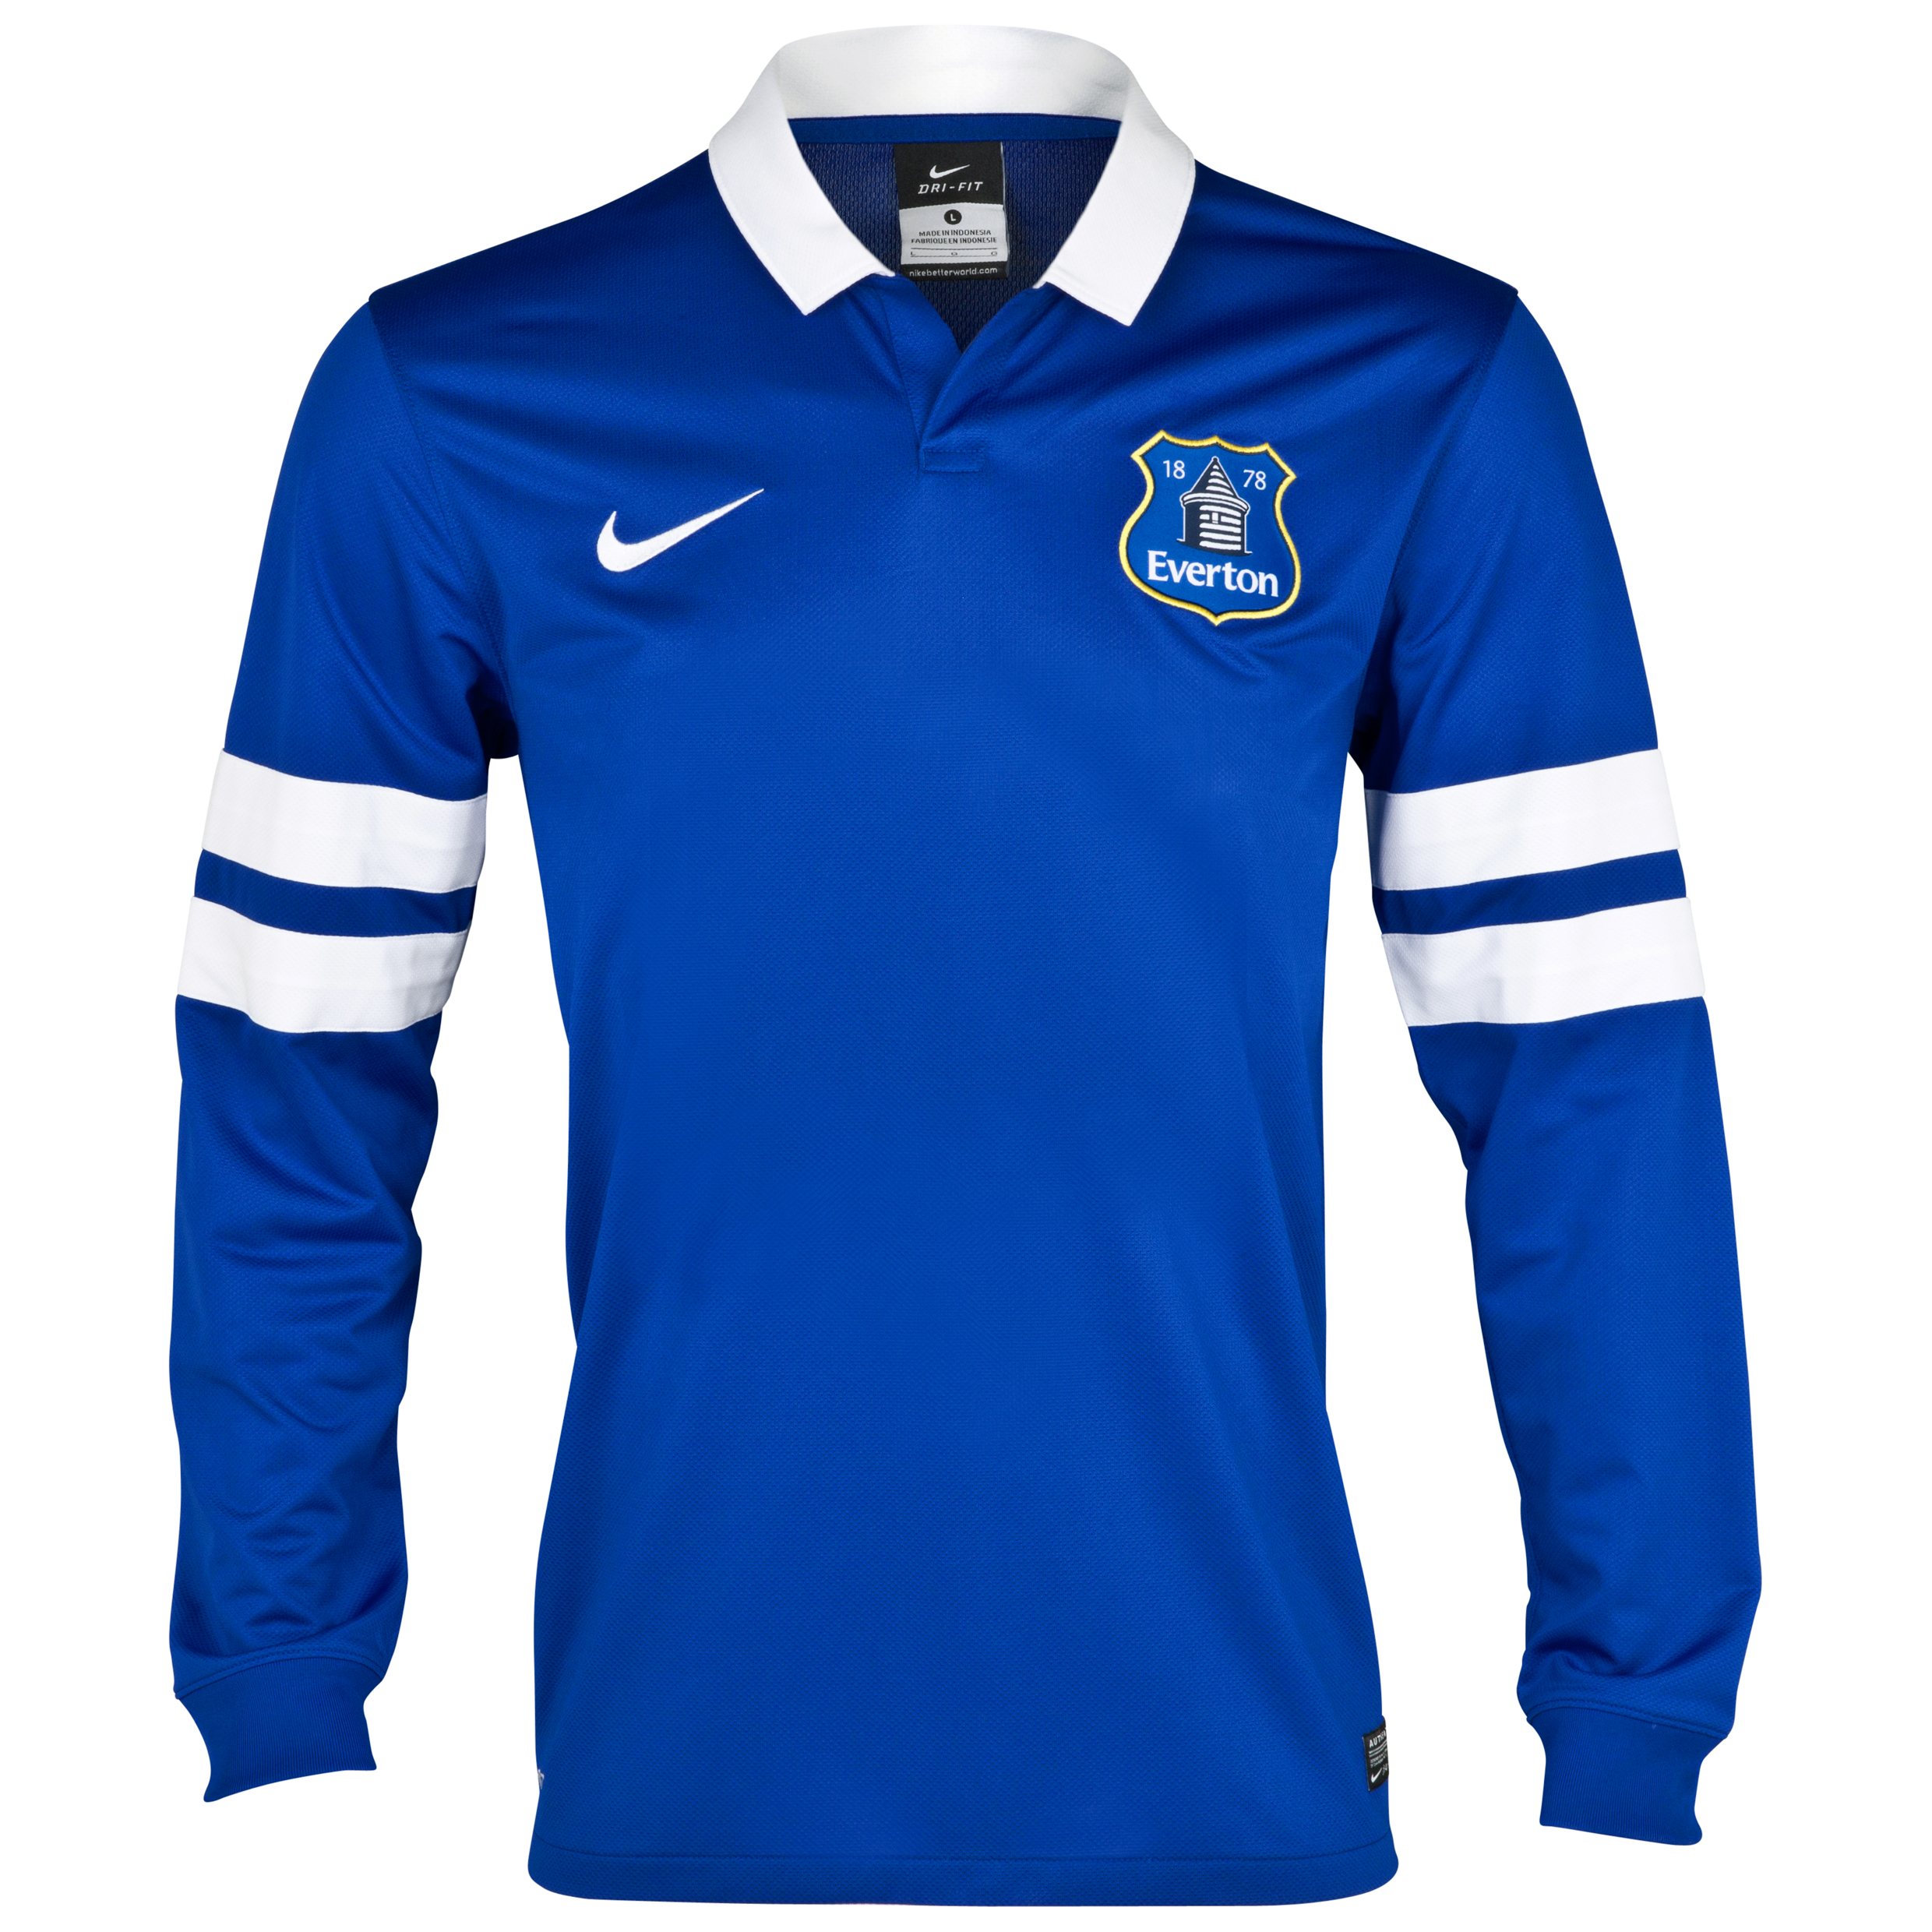 Everton Home Shirt 2013/14 - Junior - Long Sleeved Blue